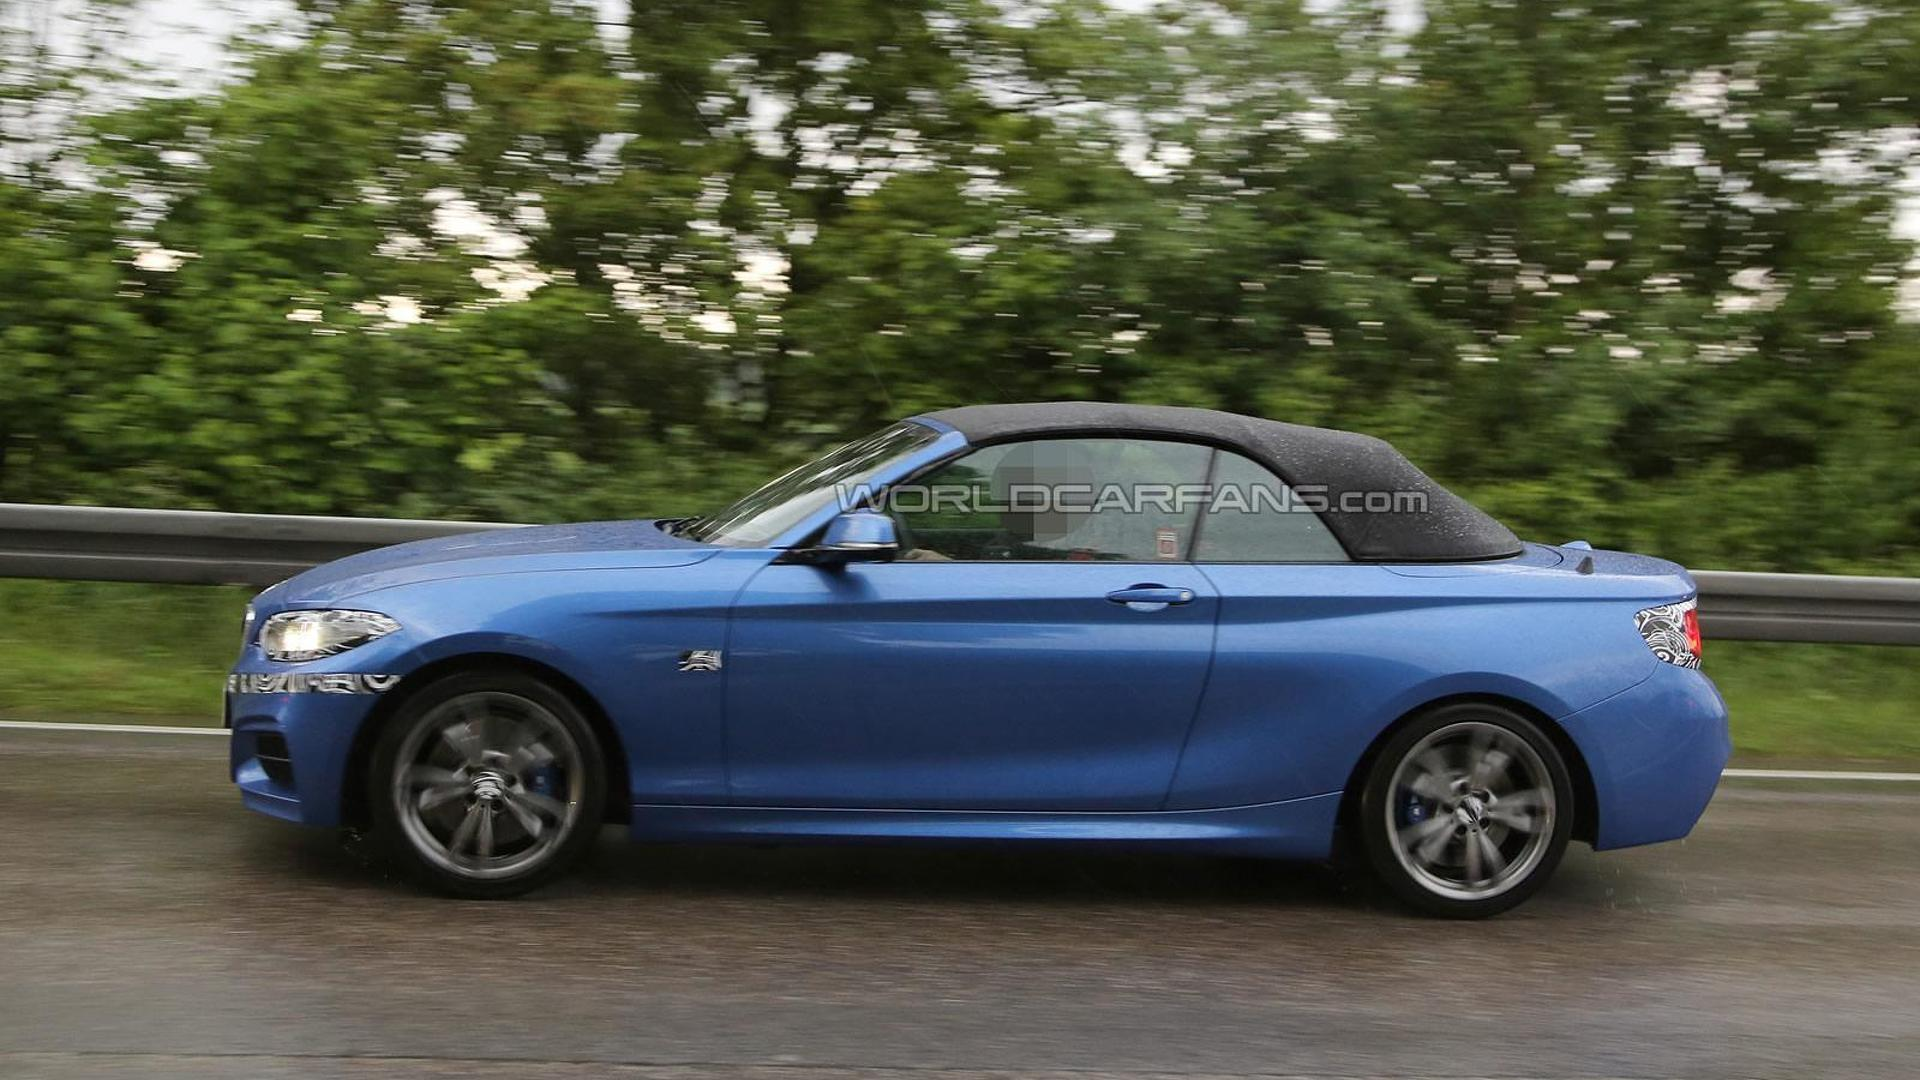 Barely disguised BMW 2-Series Convertible shows soft top in latest spy pics